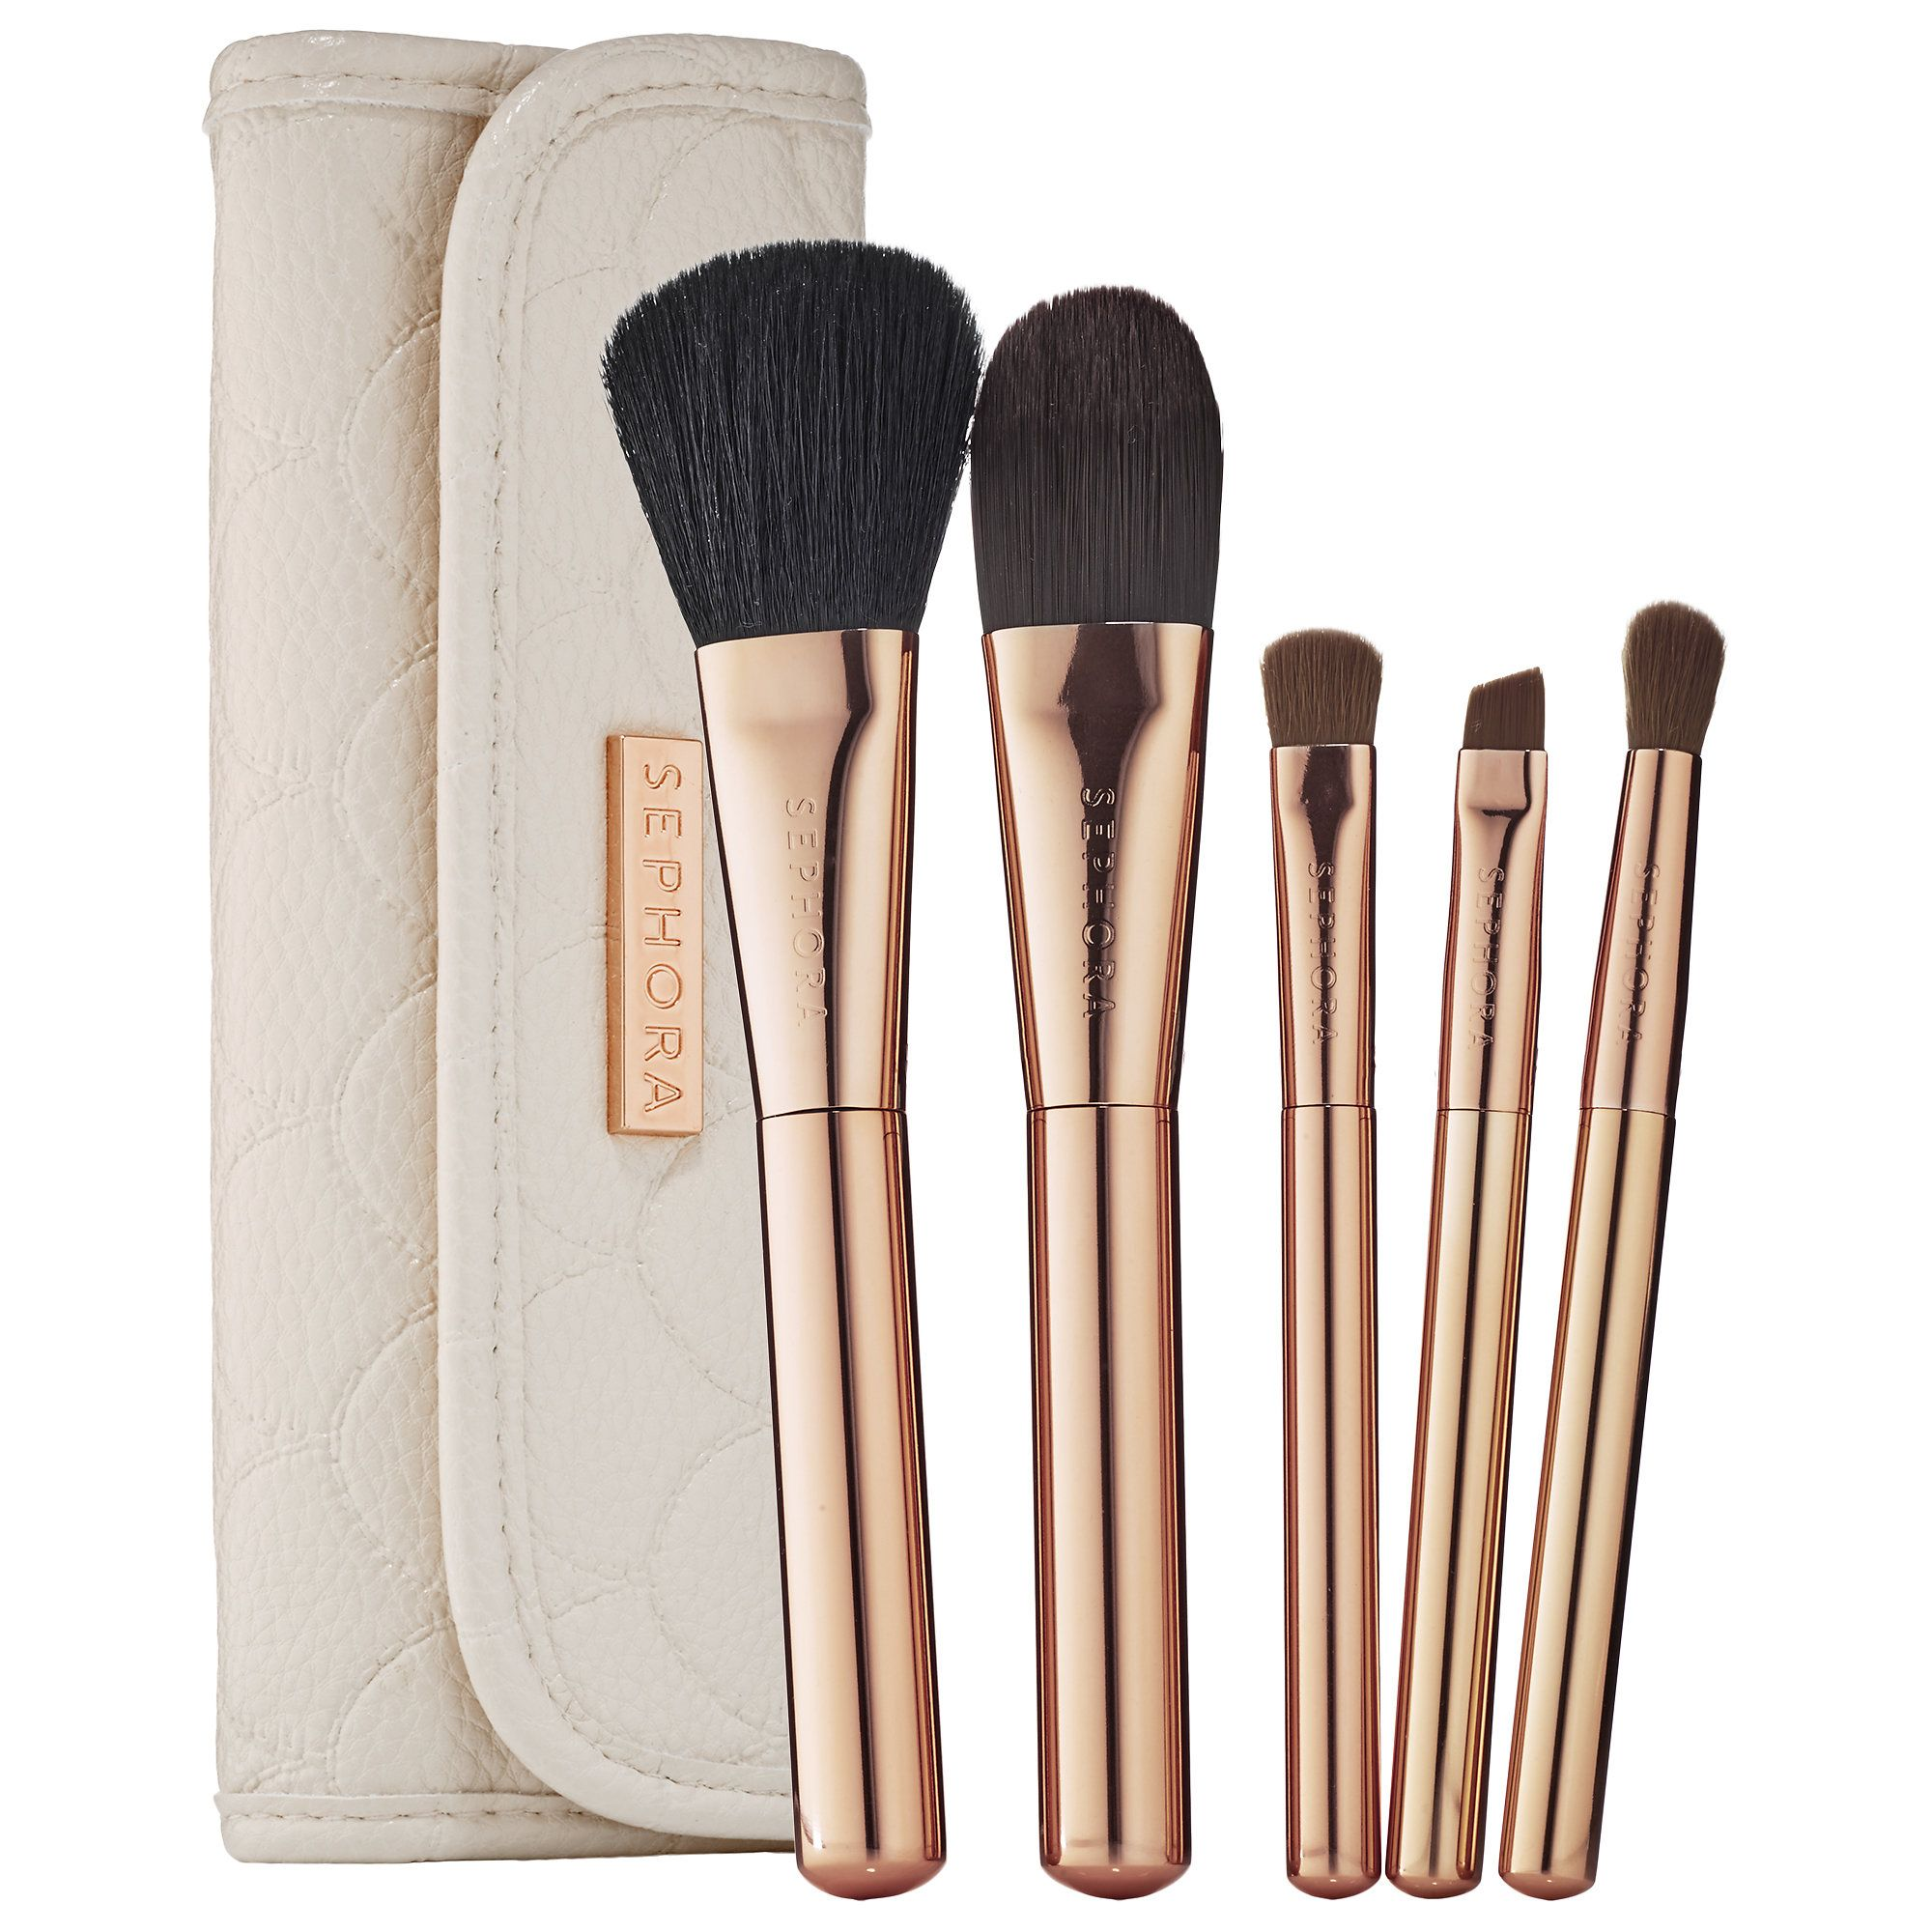 A nextlevel, fivepiece travel brush set encased in a